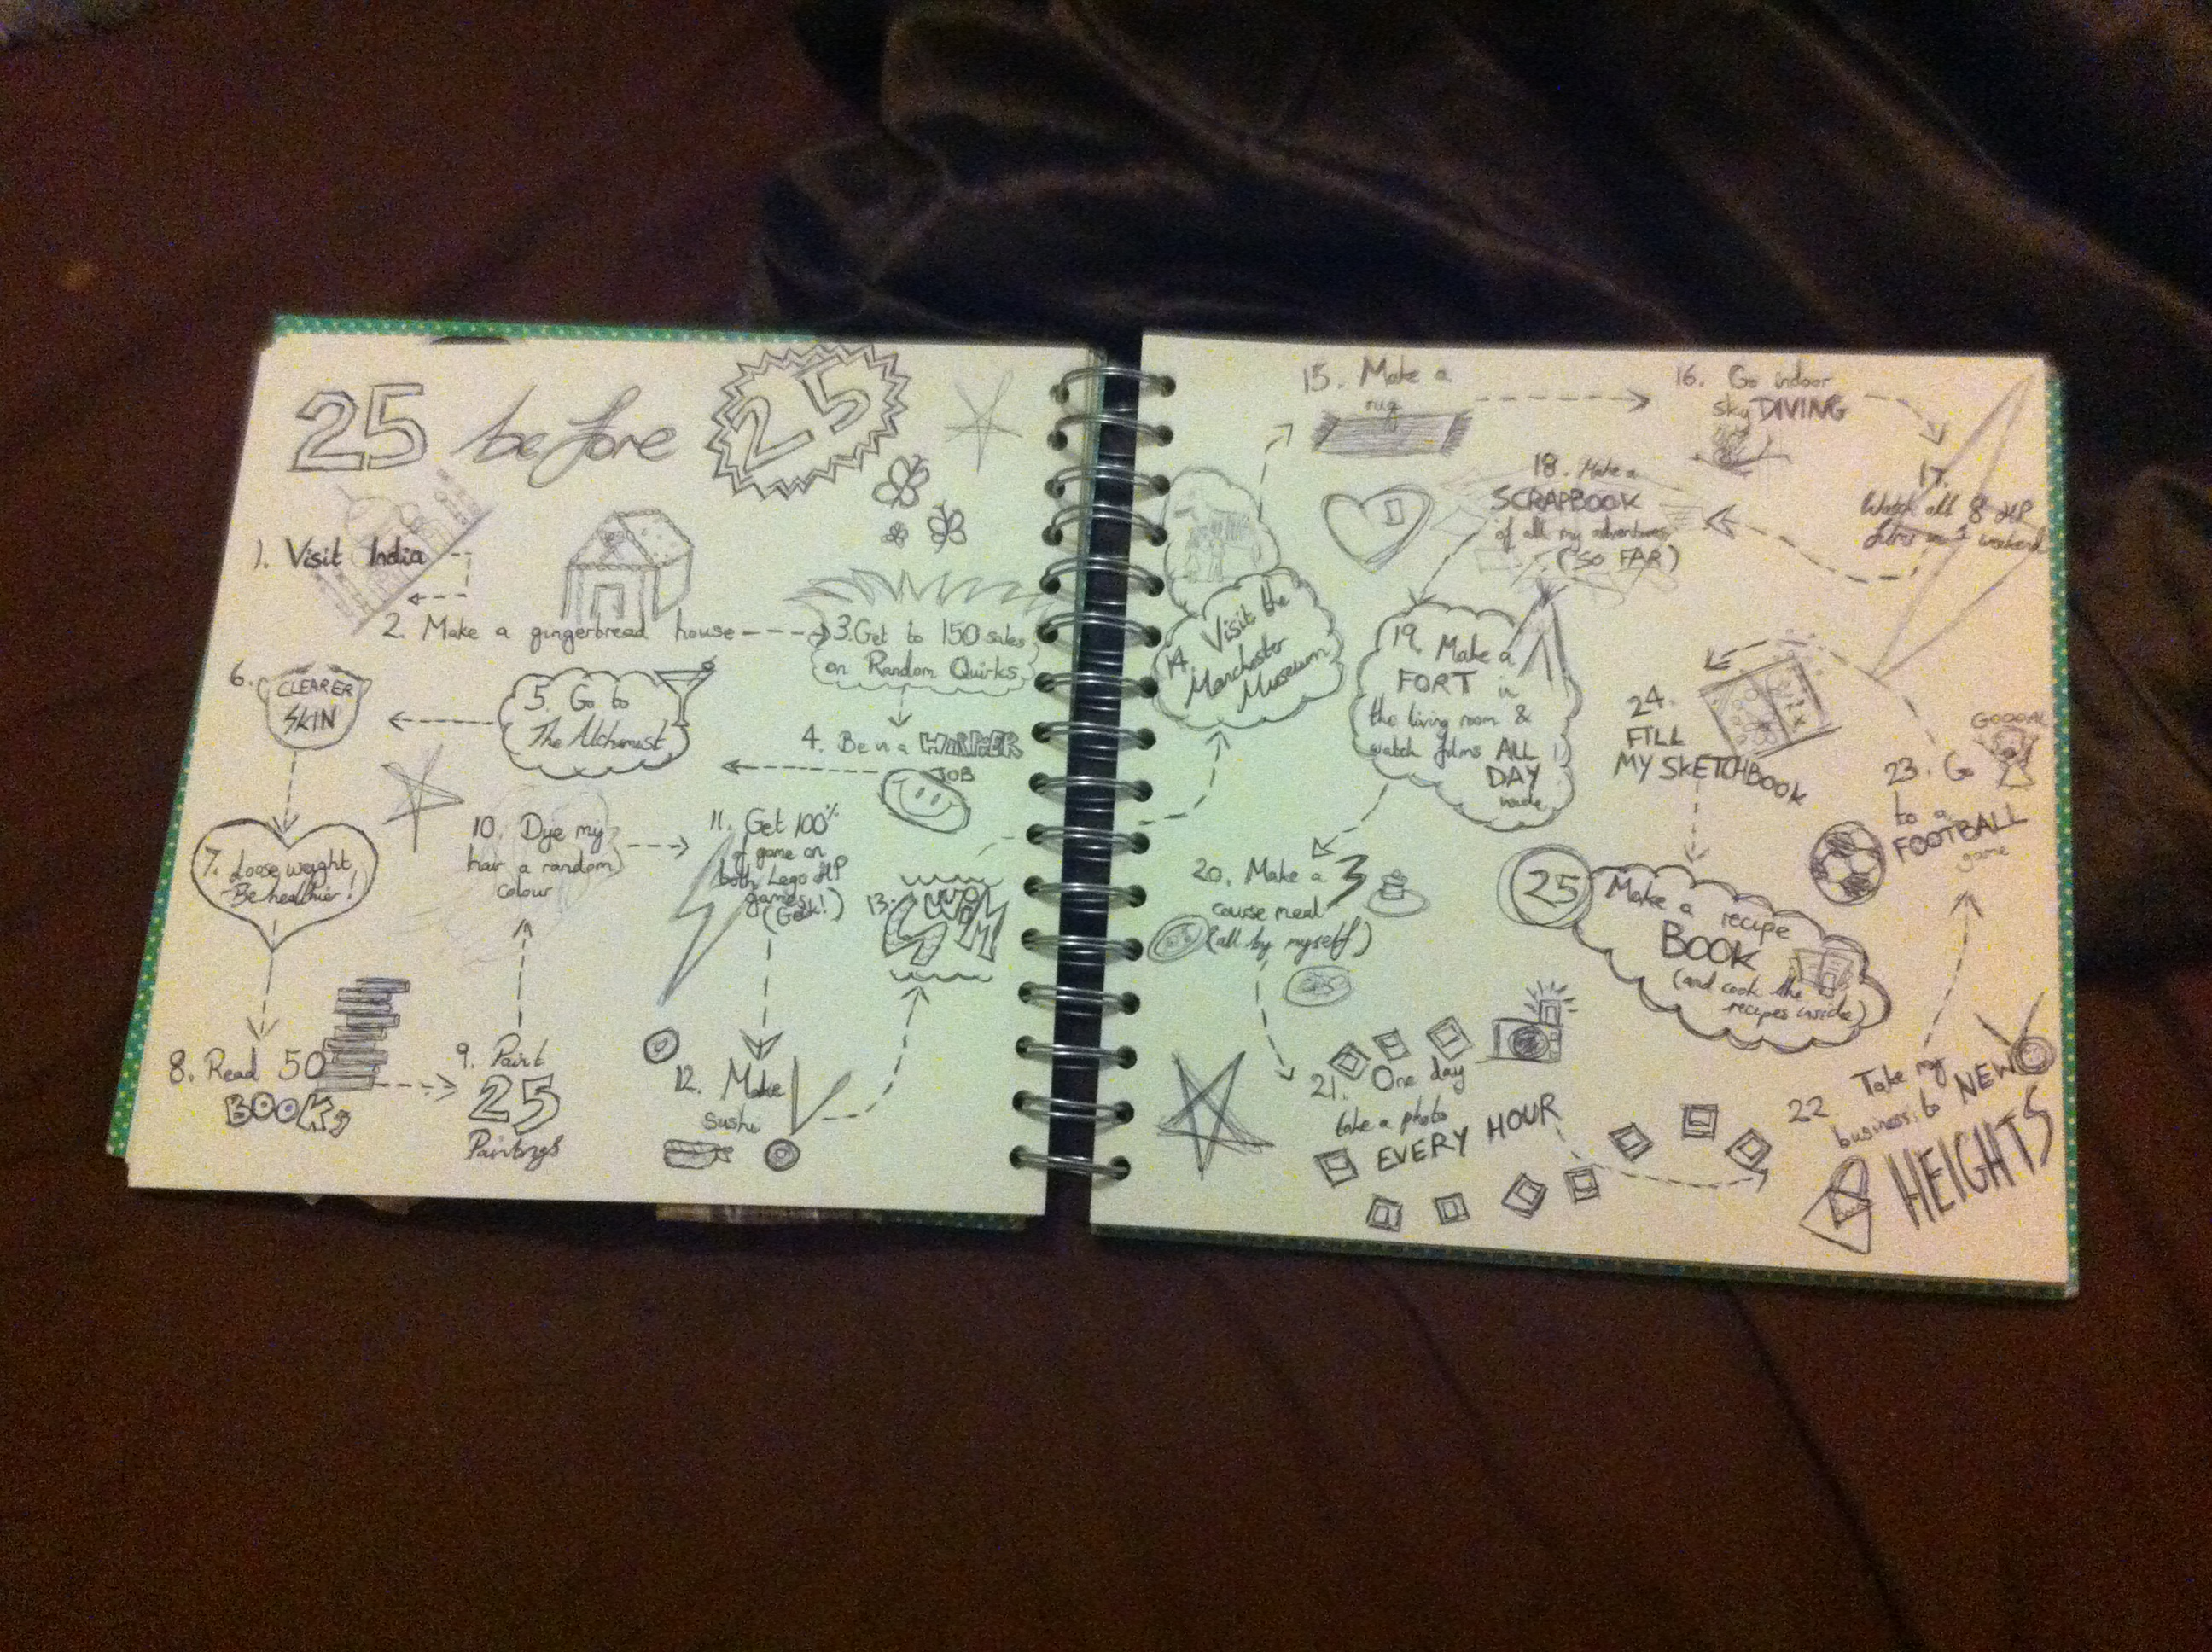 25 before 25: A doodle list of stuff I want to do